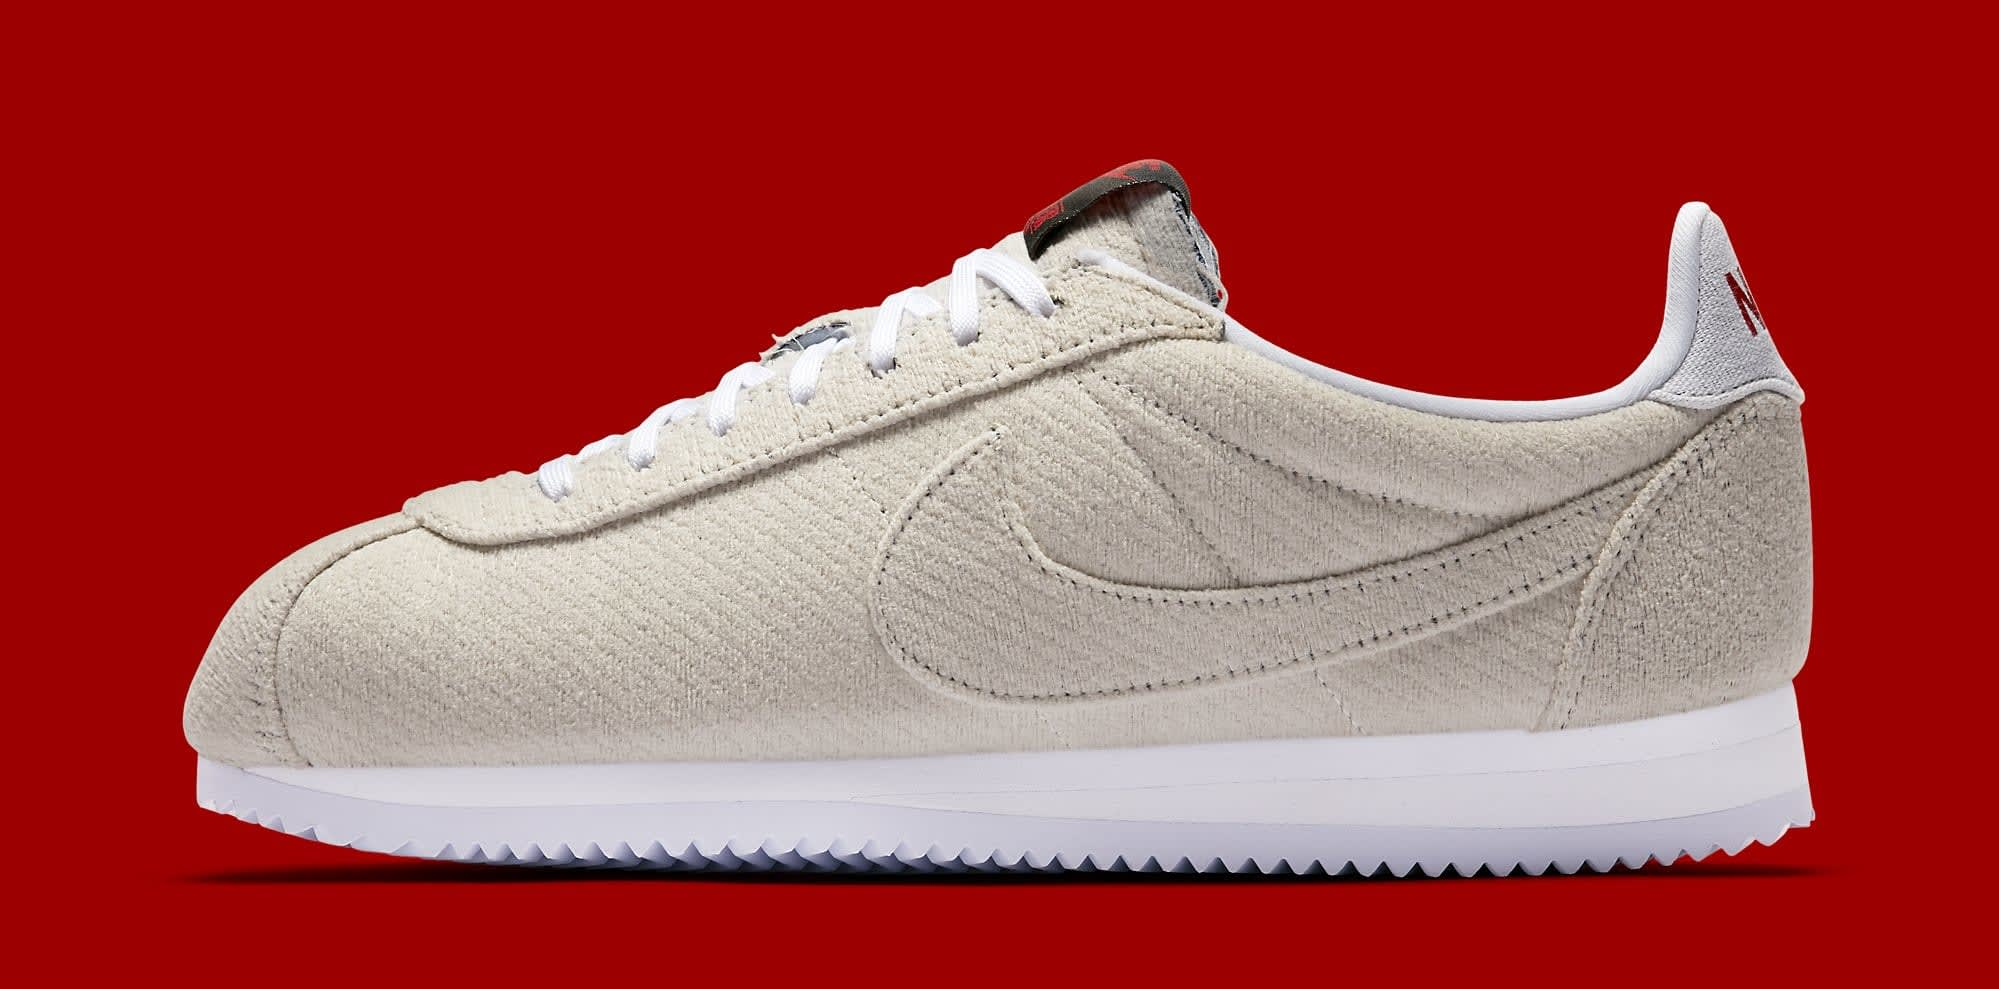 Stranger Things x Nike Cortez 'Starcourt Mall'